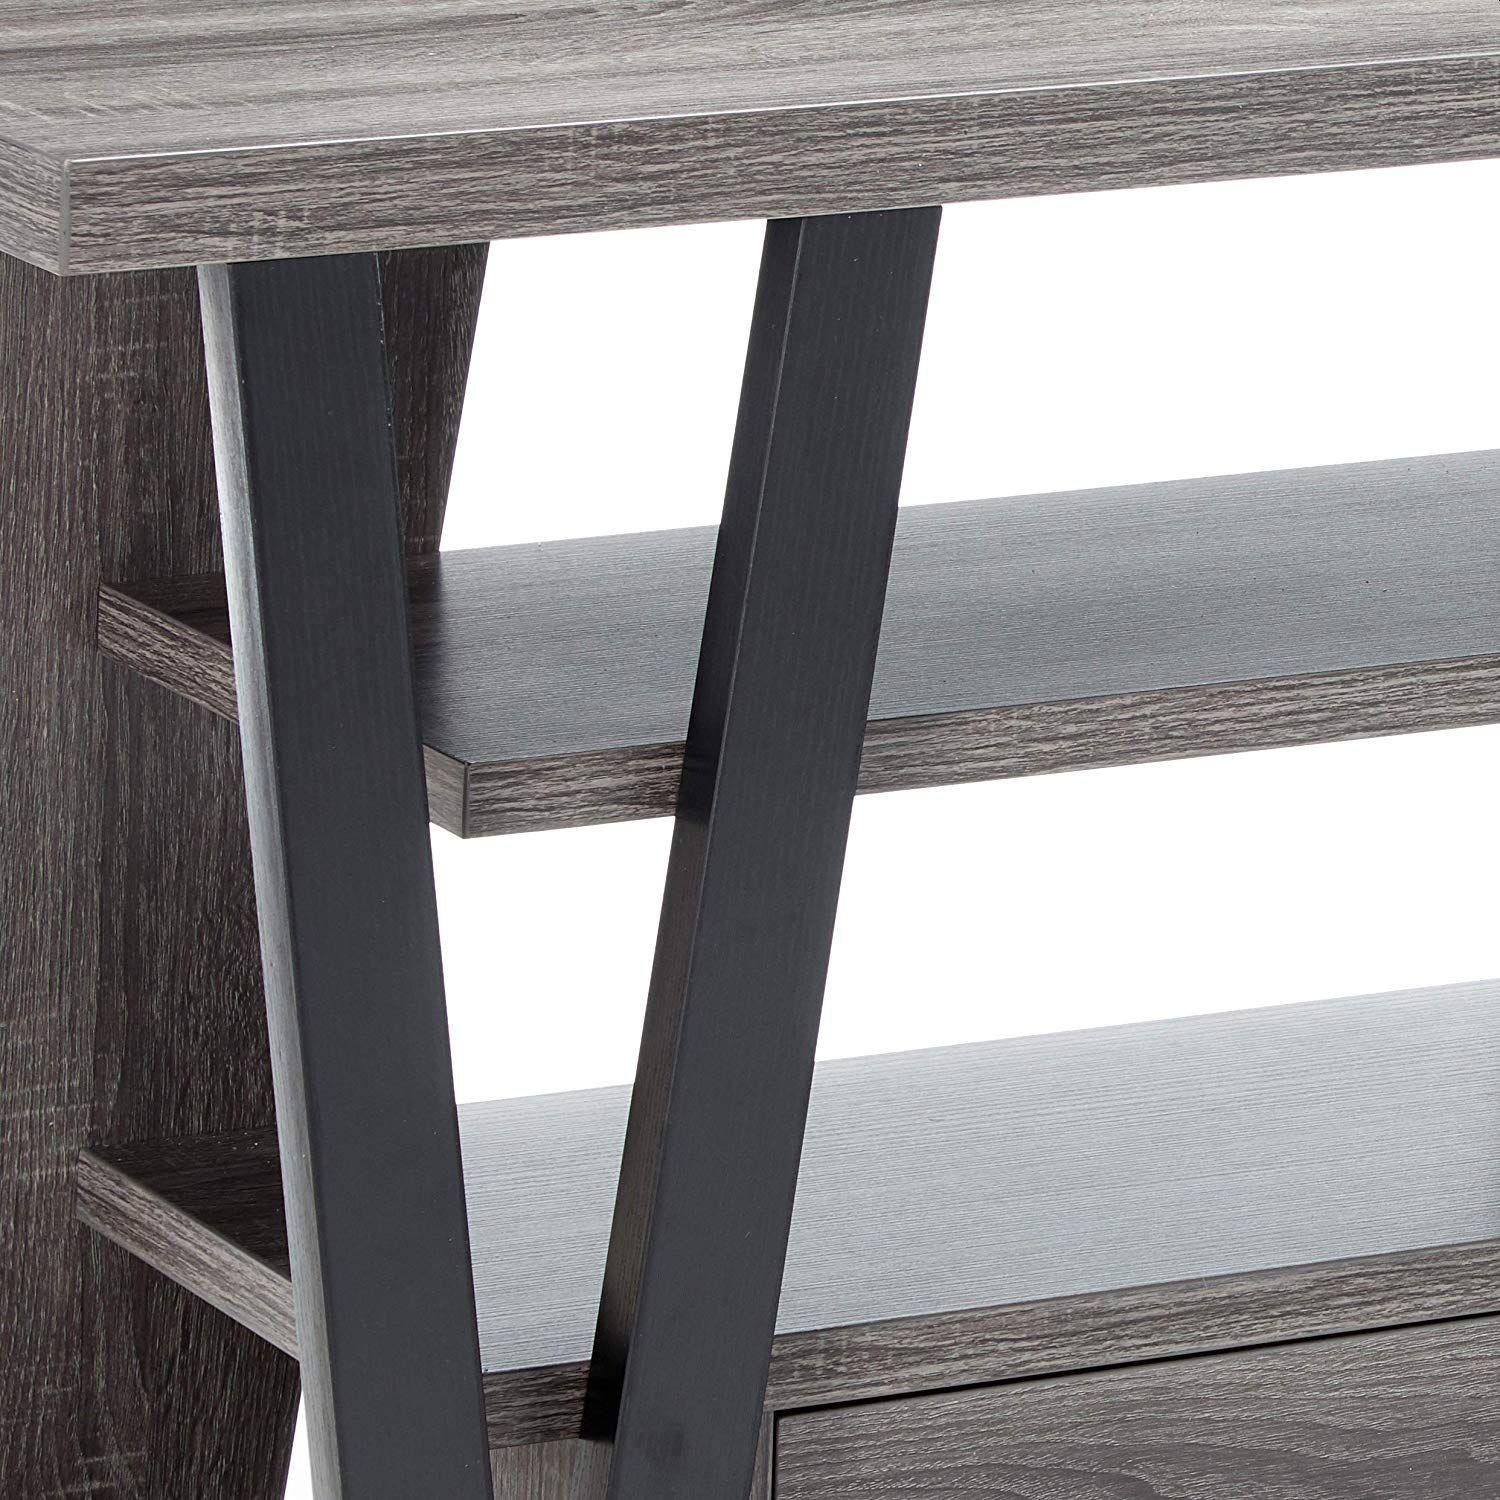 Modern TV Stand in Grey-Black Finish w/ Shelves & Drawers - image-5